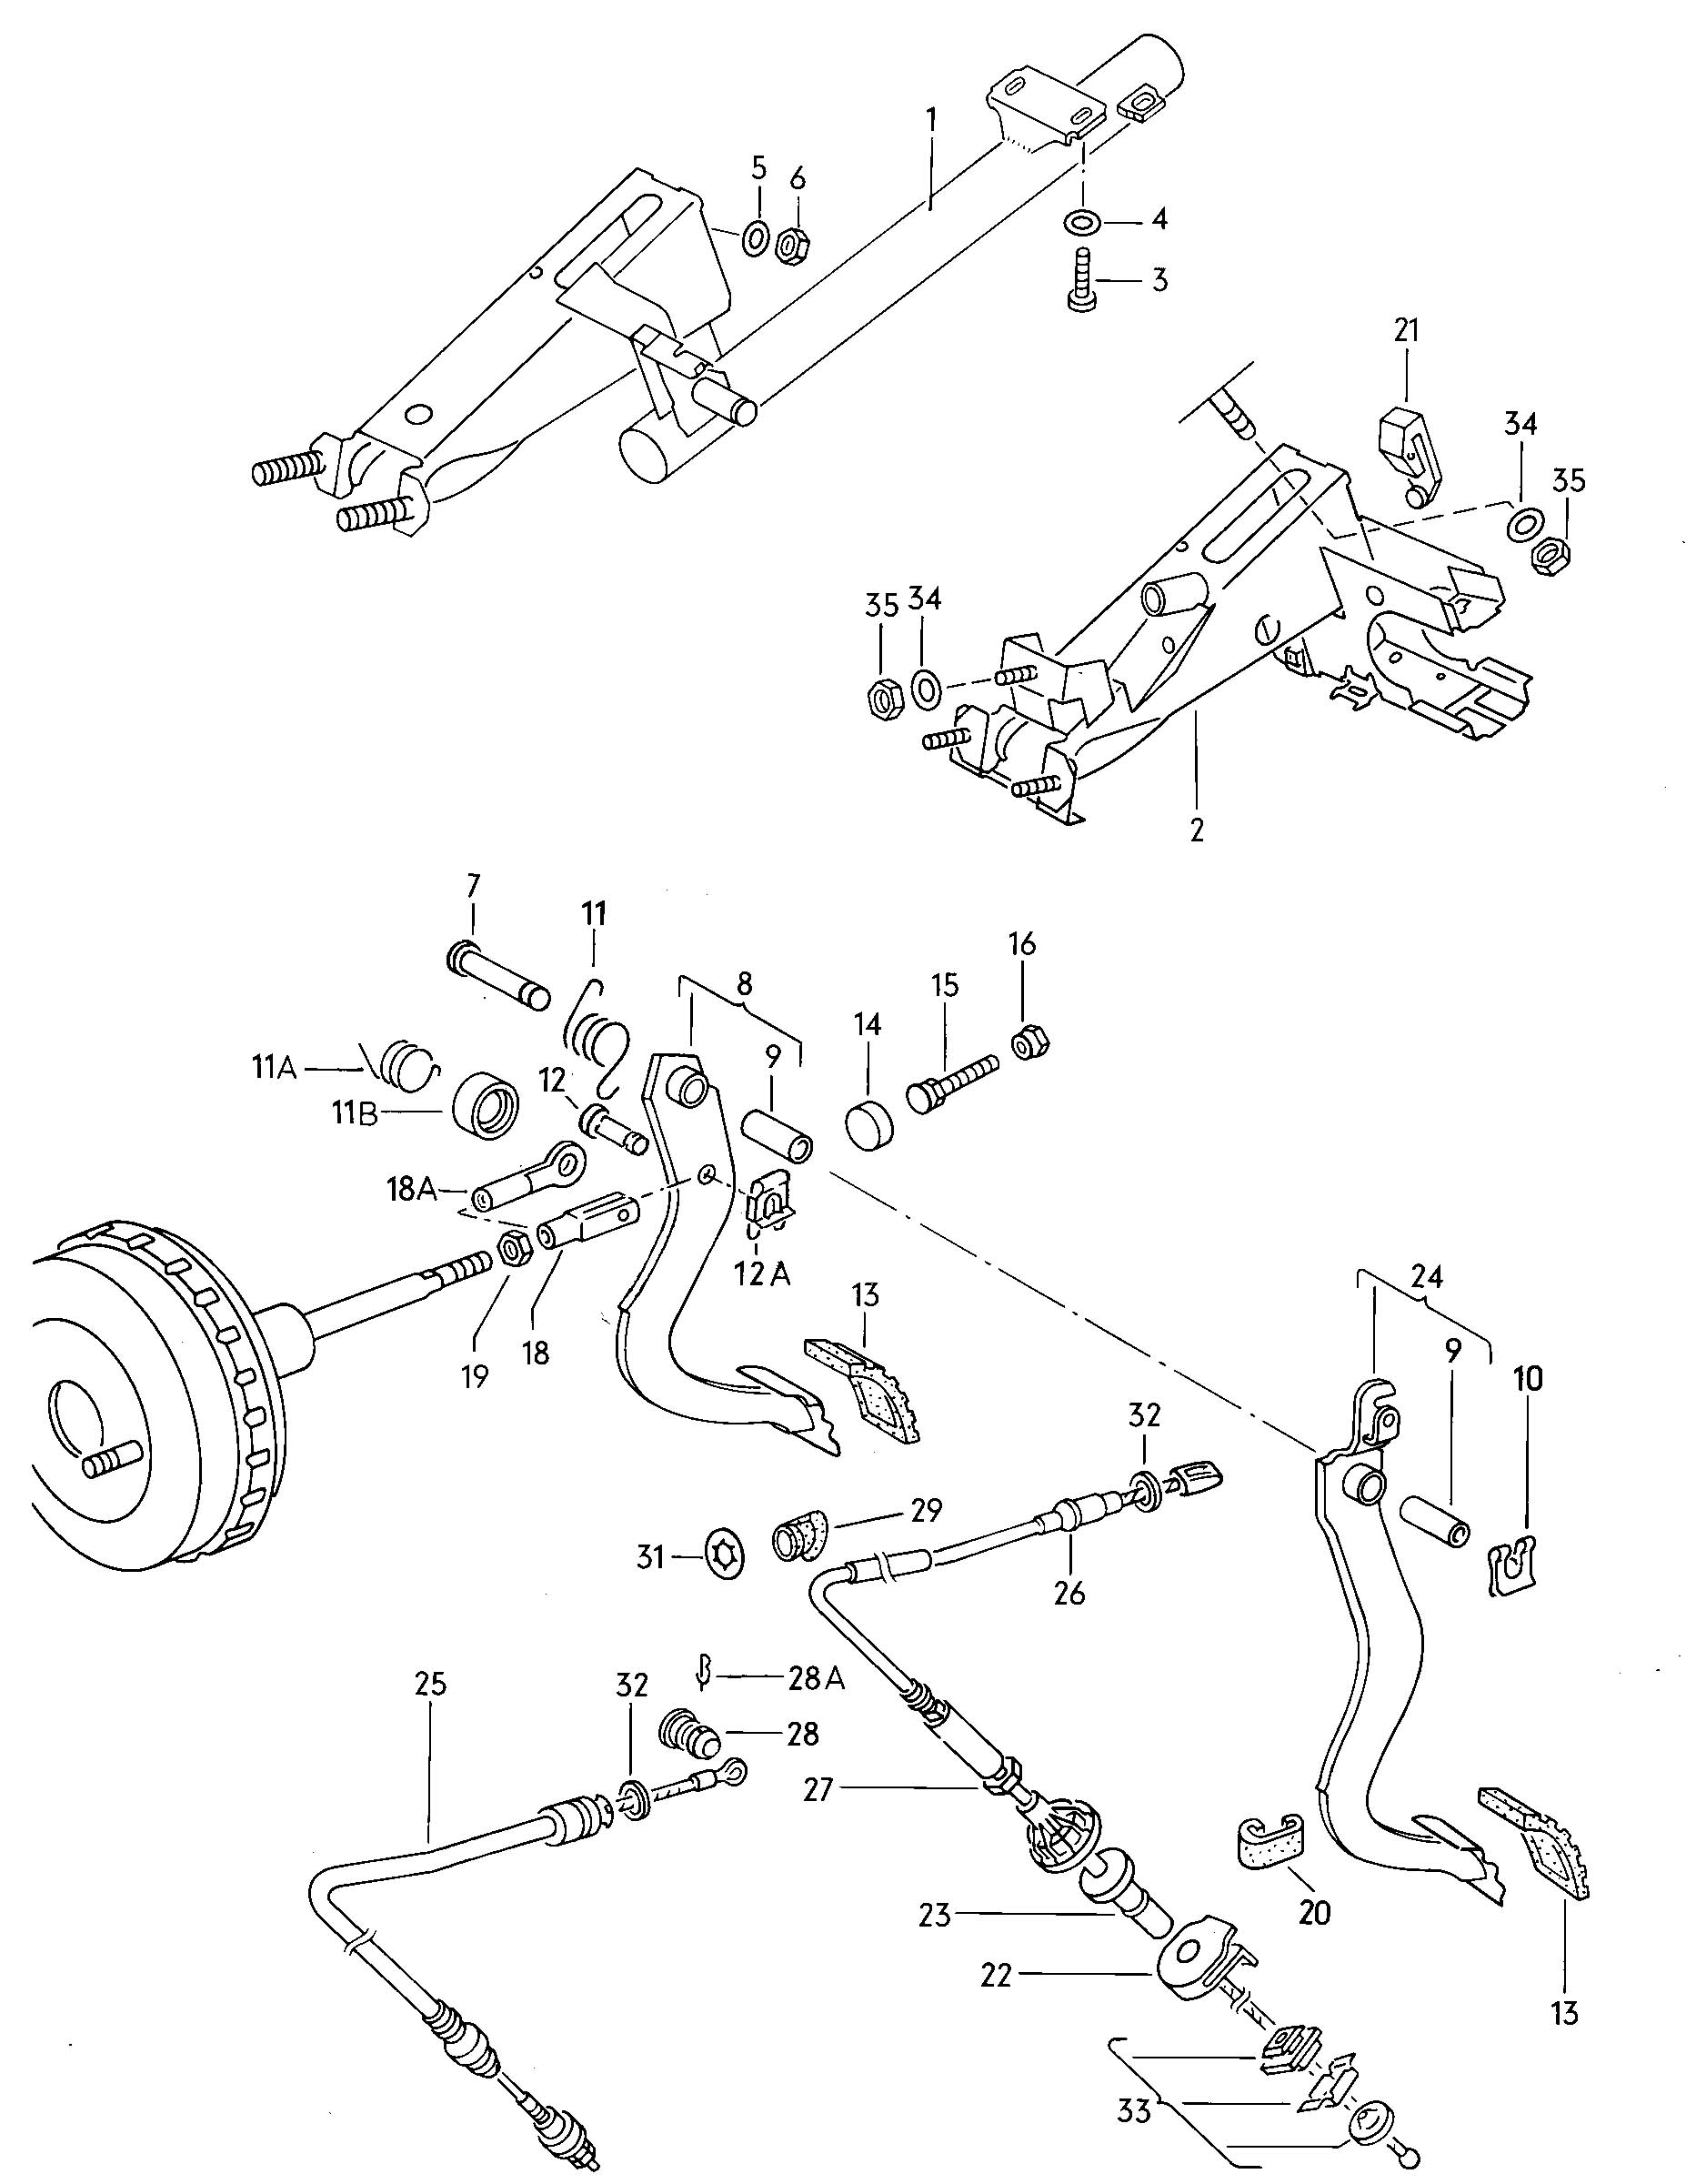 Service manual [Exploded View 2006 Maybach 57 Manual